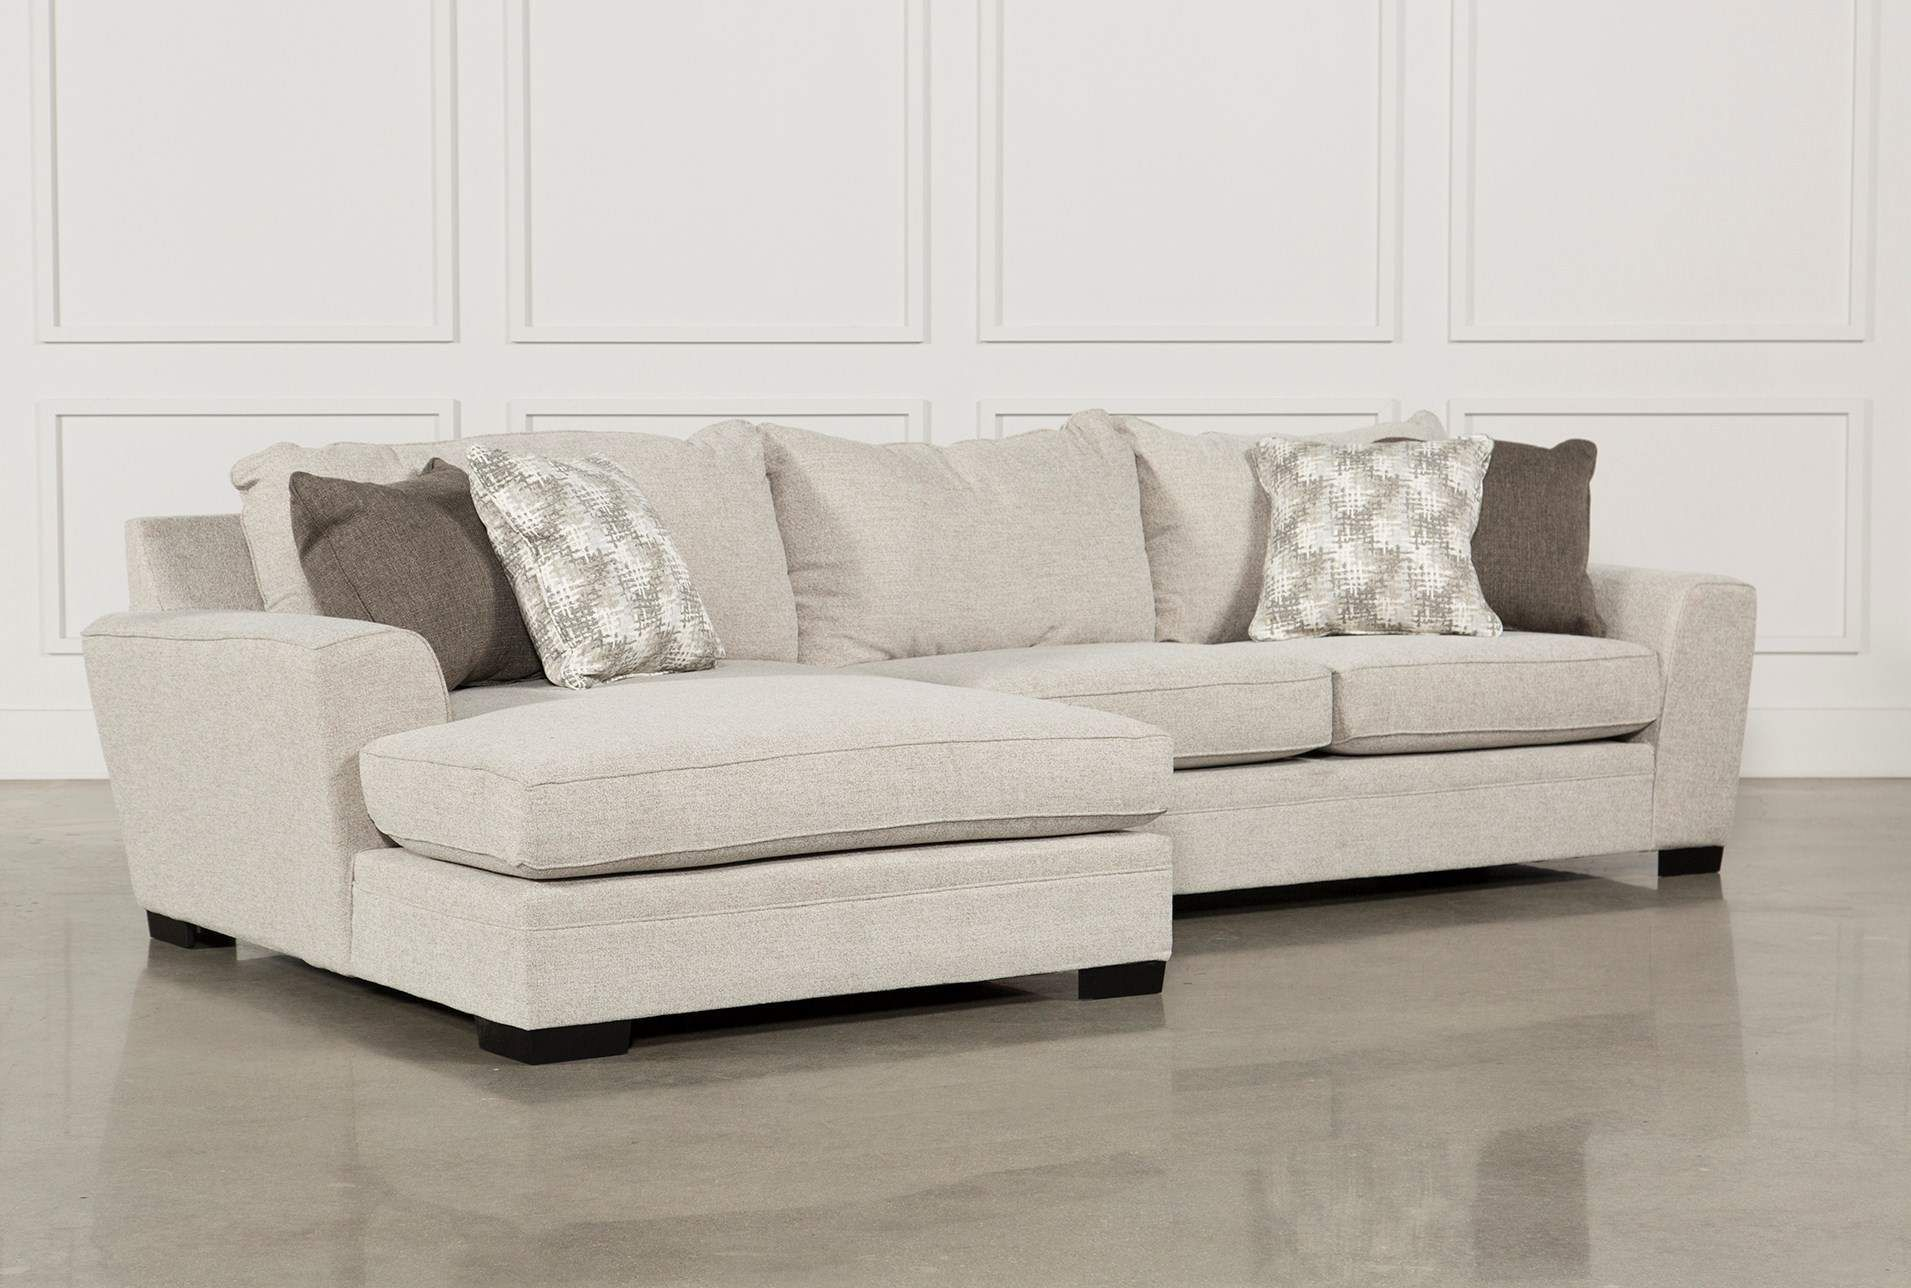 Delano 2 Piece Sectional W/Laf Oversized Chaise | Living In Turdur 2 Piece Sectionals With Laf Loveseat (View 5 of 15)